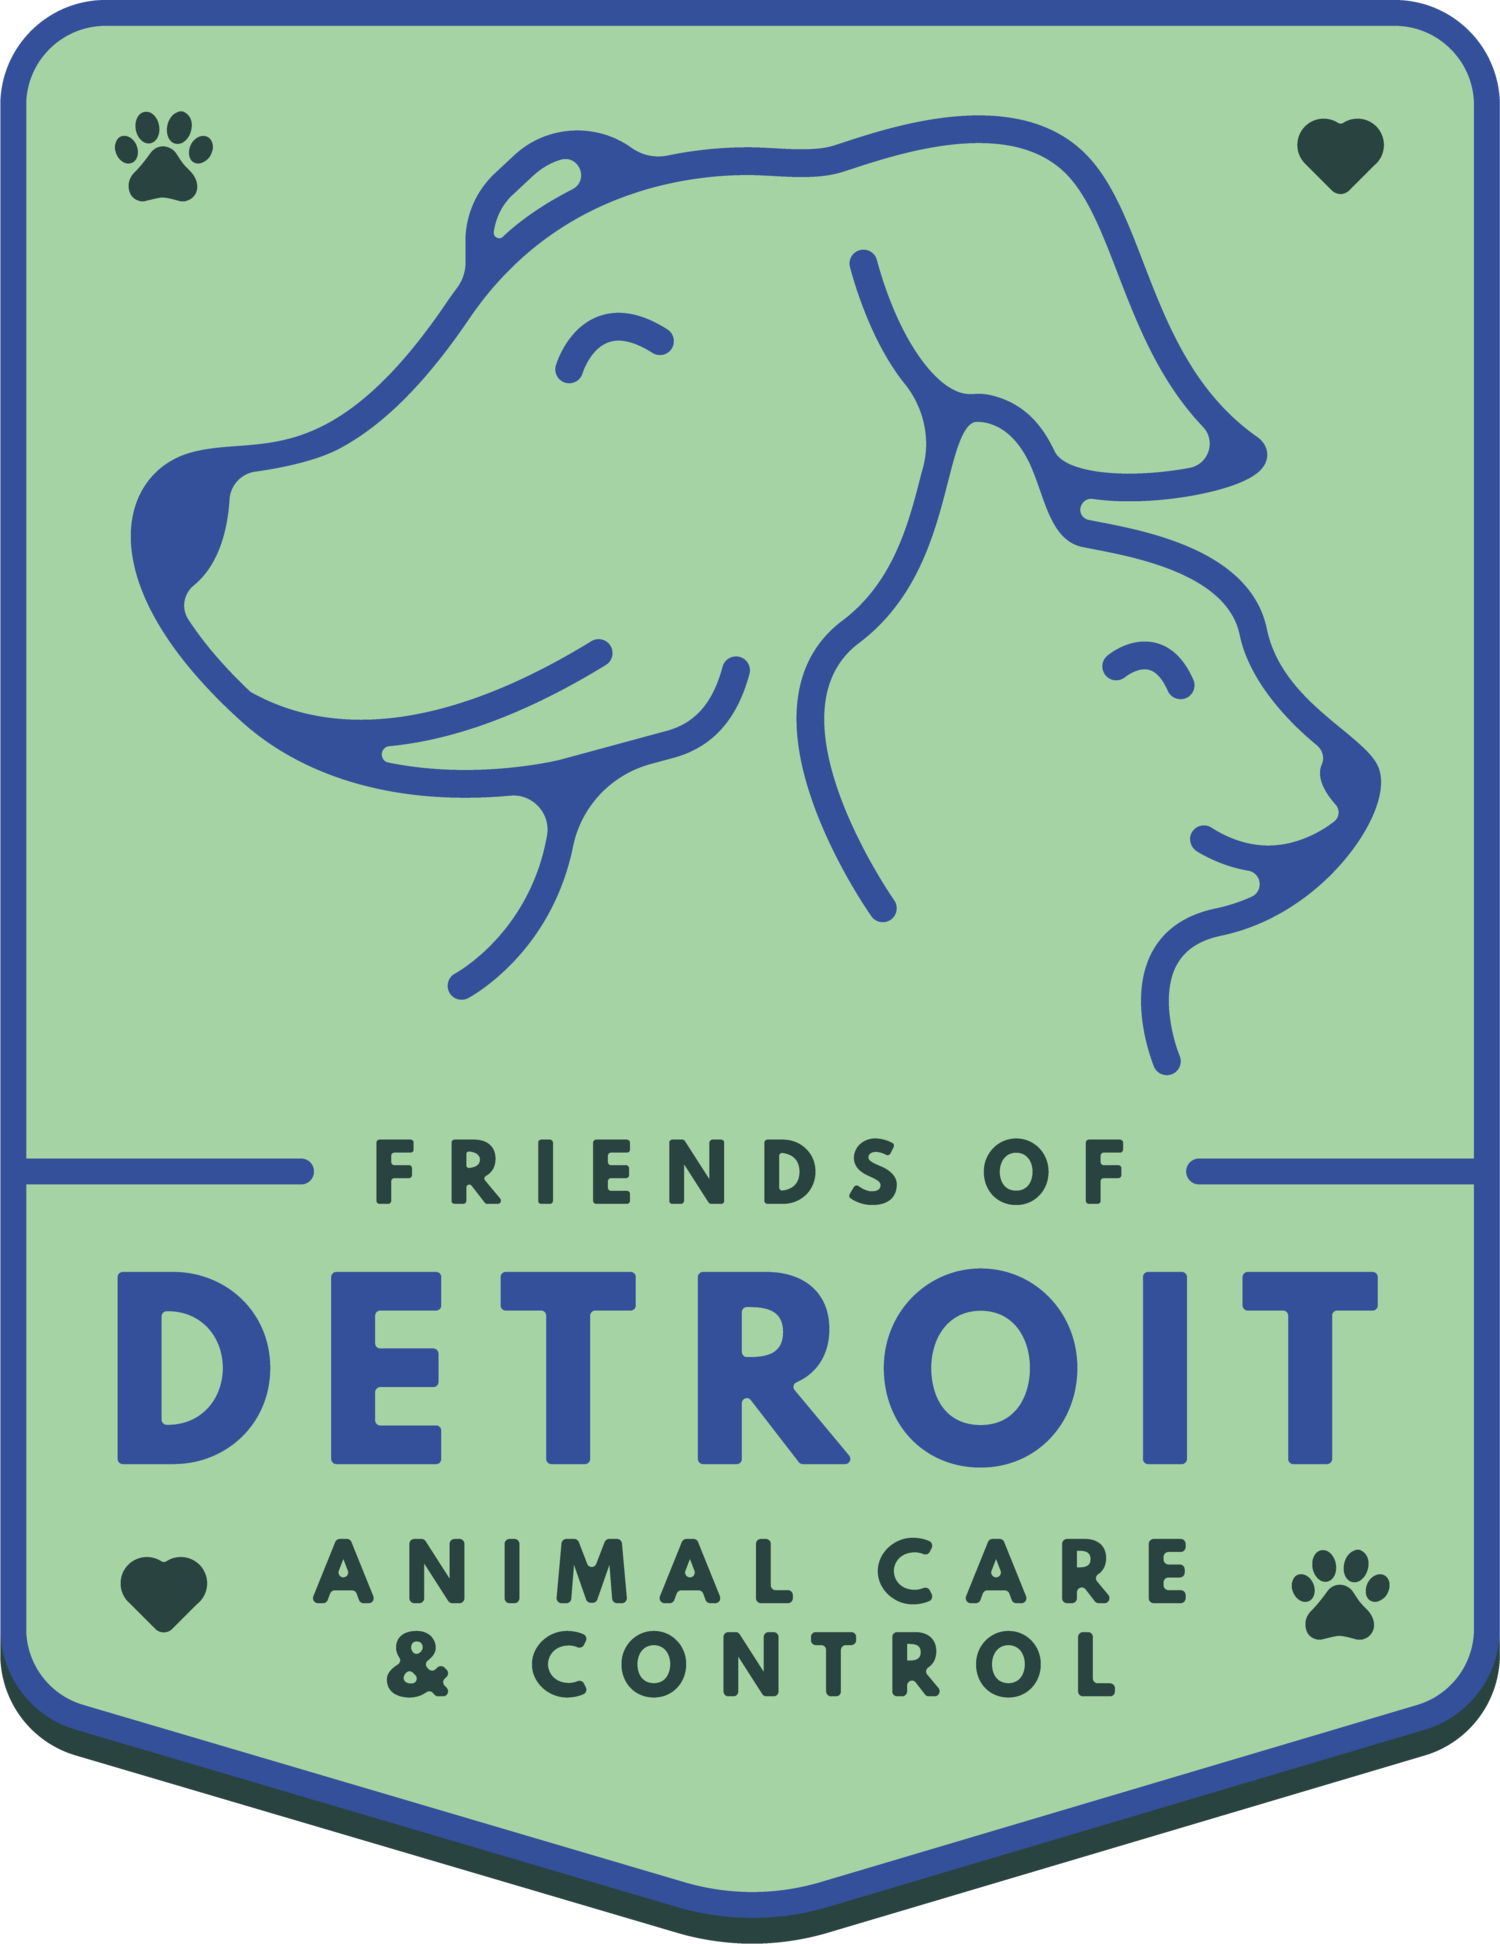 Friends of Detroit Animal Care and Control